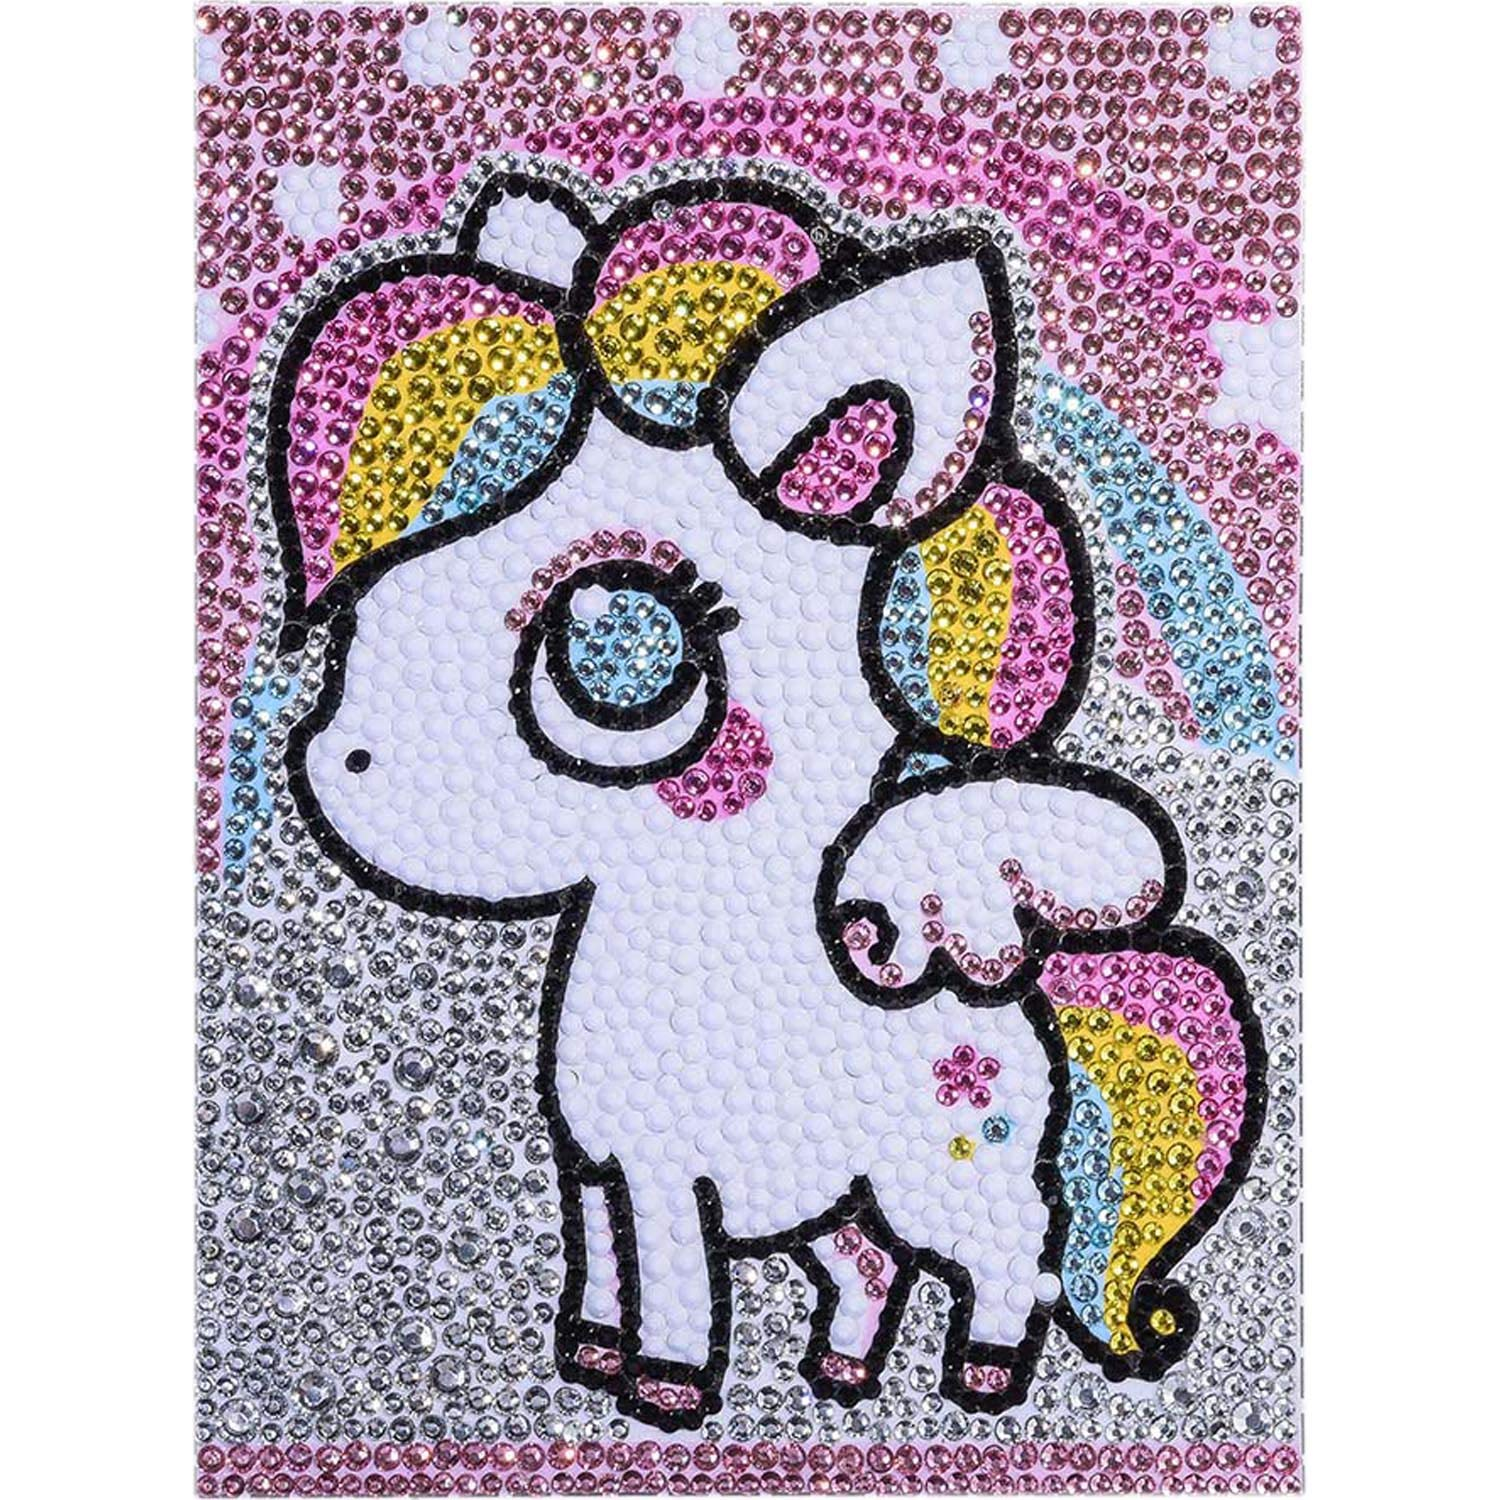 FIGHTA 5D Diamond Painting Kits for Kids Full Drill Painting by Number Kits for Children Rhinestone Diamond Embroidery Home Wall Decor (Pony) by FIGHTA